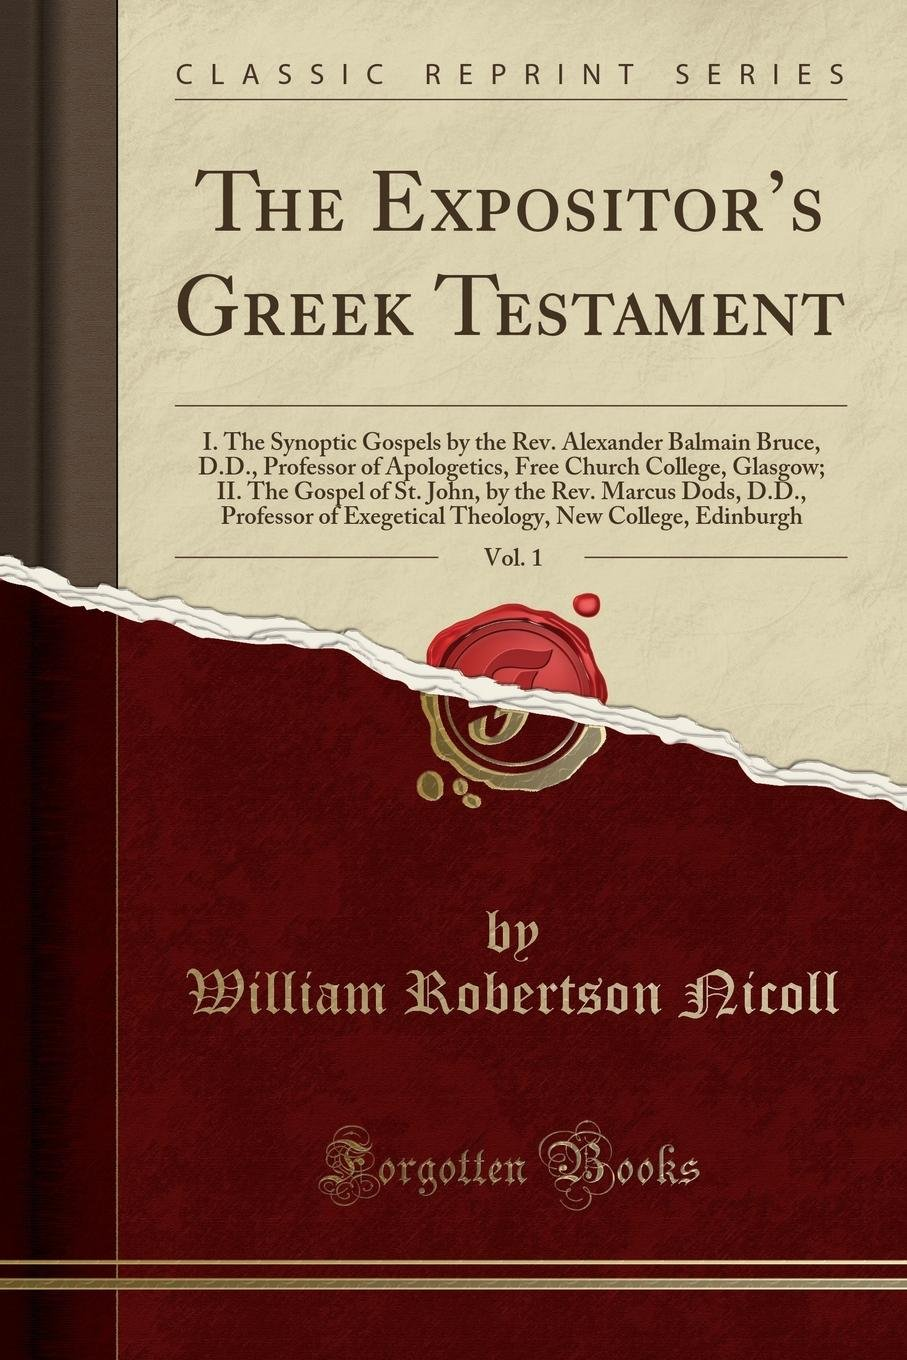 The Expositor's Greek Testament, Vol. 1: I. The Synoptic Gospels by the Rev. Alexander Balmain Bruce, D.D, Professor of Apologetics, Free Church Dods, D.D, Professor of Exegetical Theolo pdf